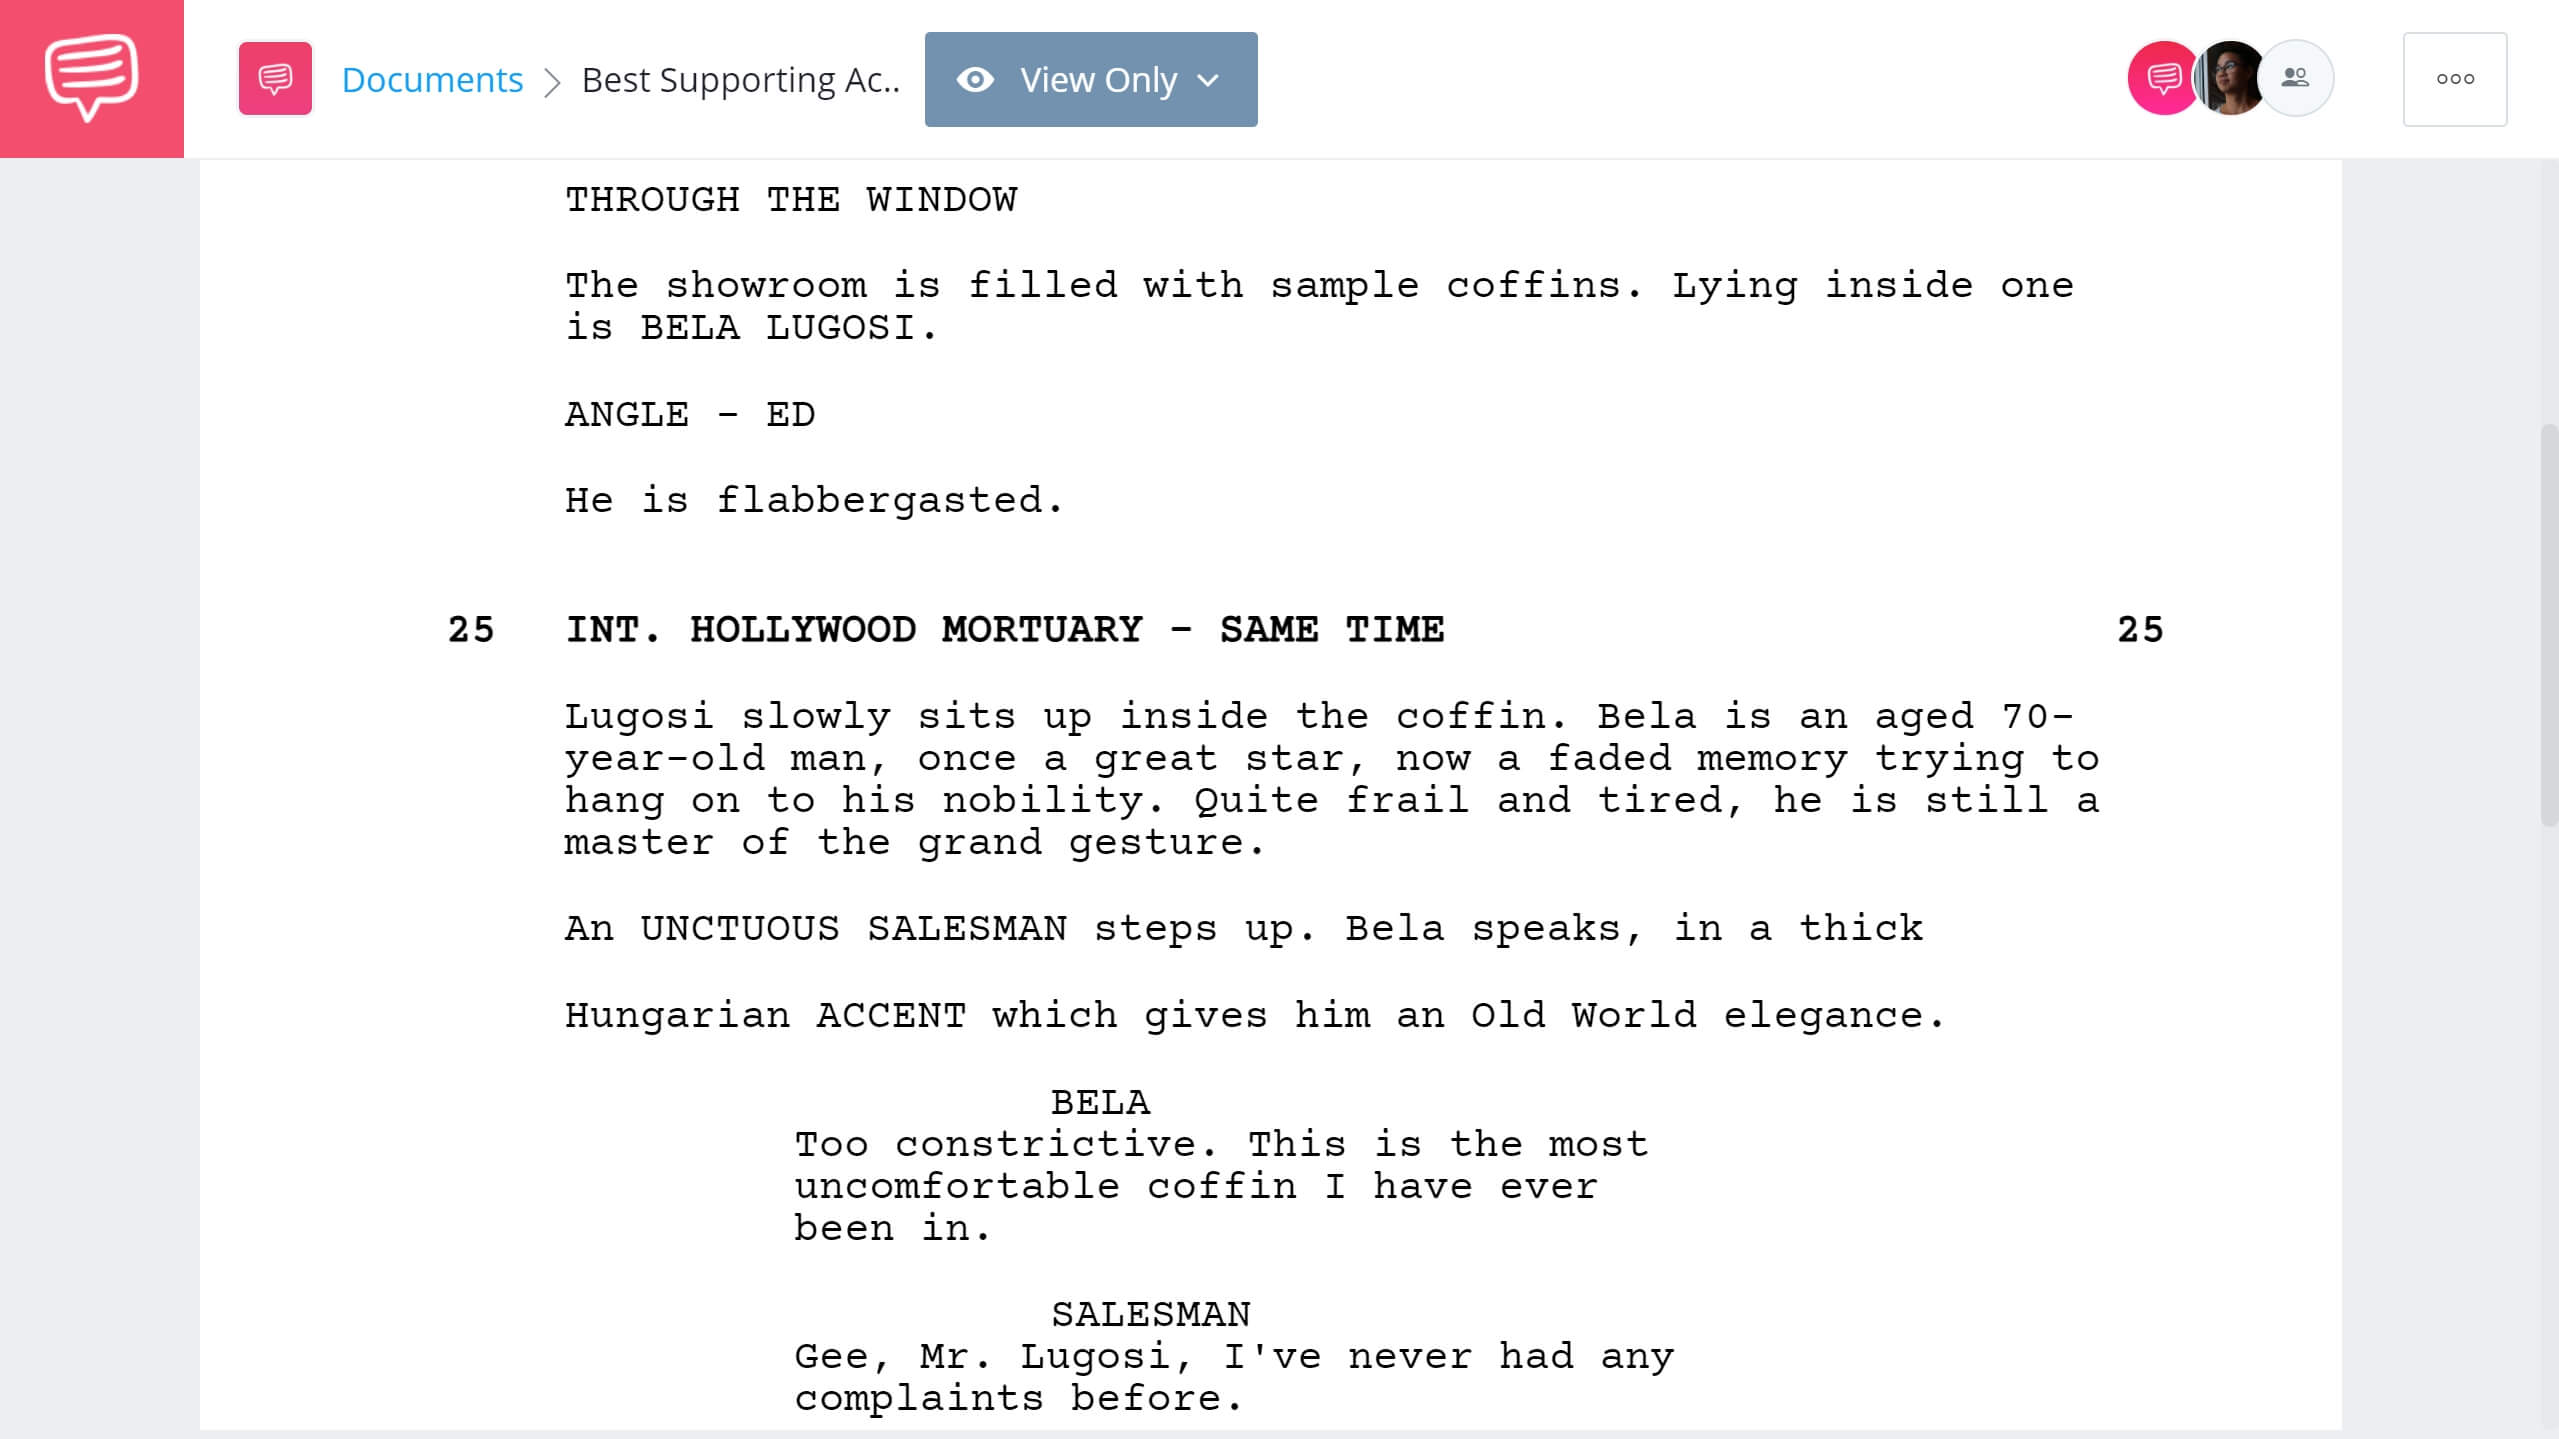 Academy Award for Best Supporting Actor Ed Wood Excerpt StudioBinder Screenwriting Software